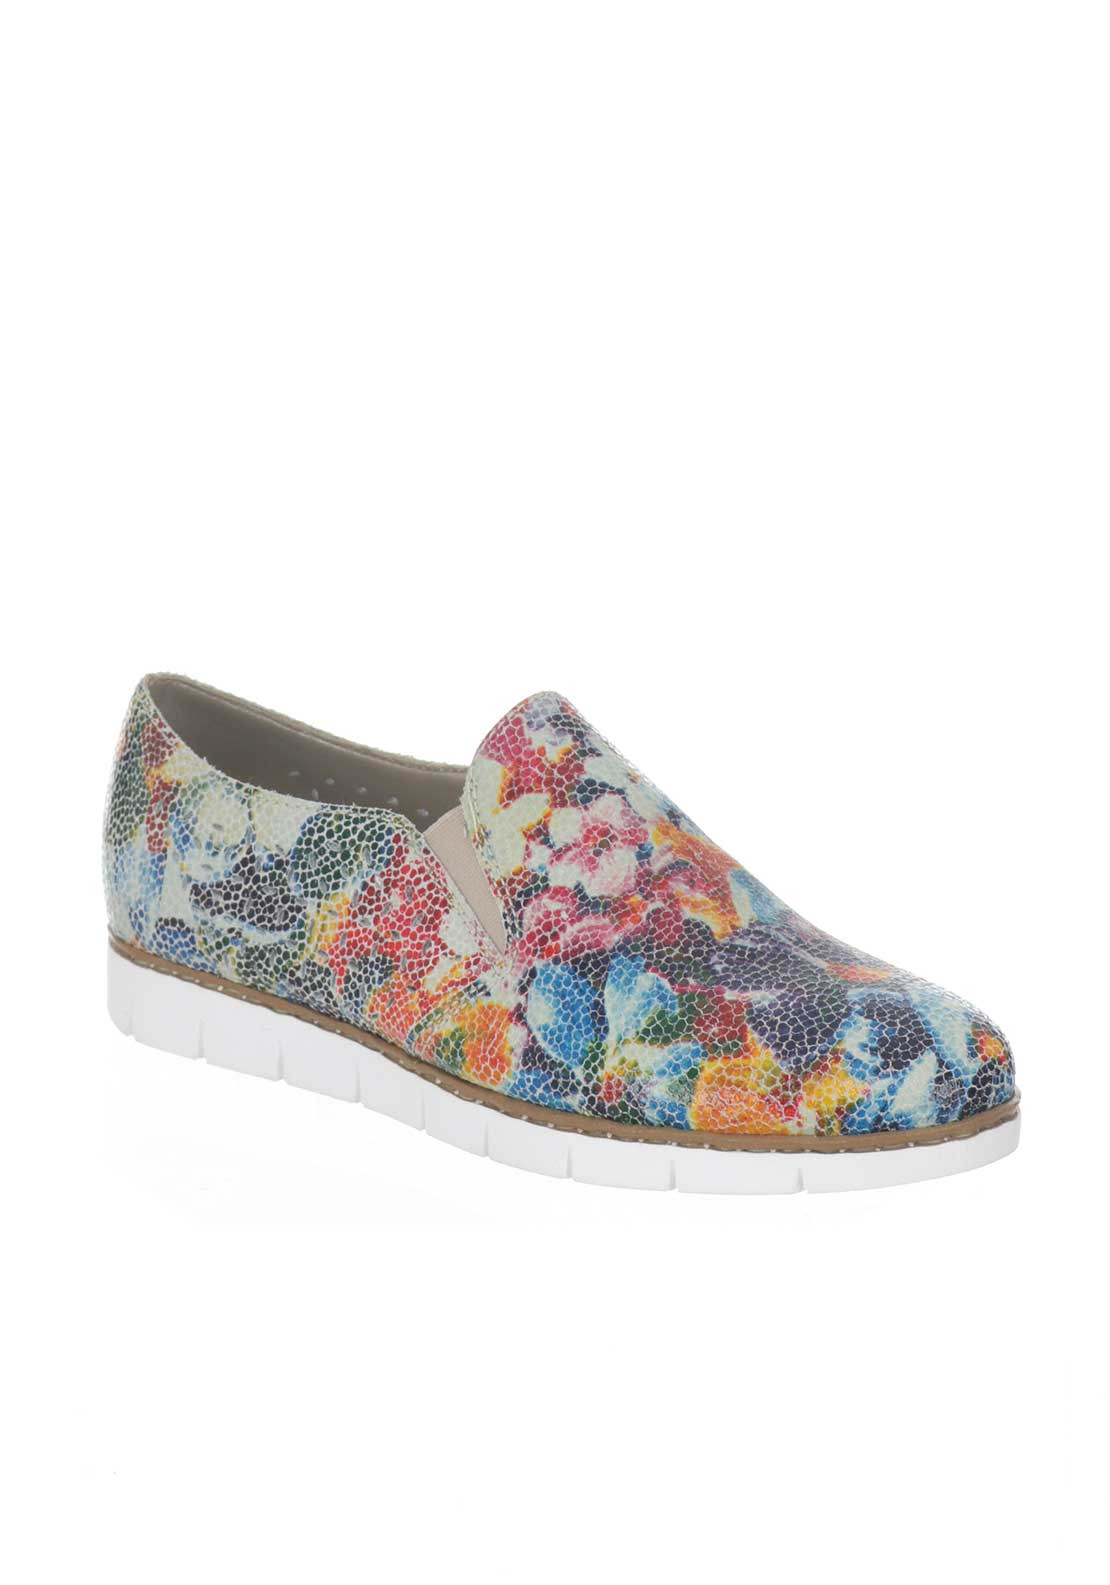 Rieker Womens Leather Printed Slip on Shoes, Multi